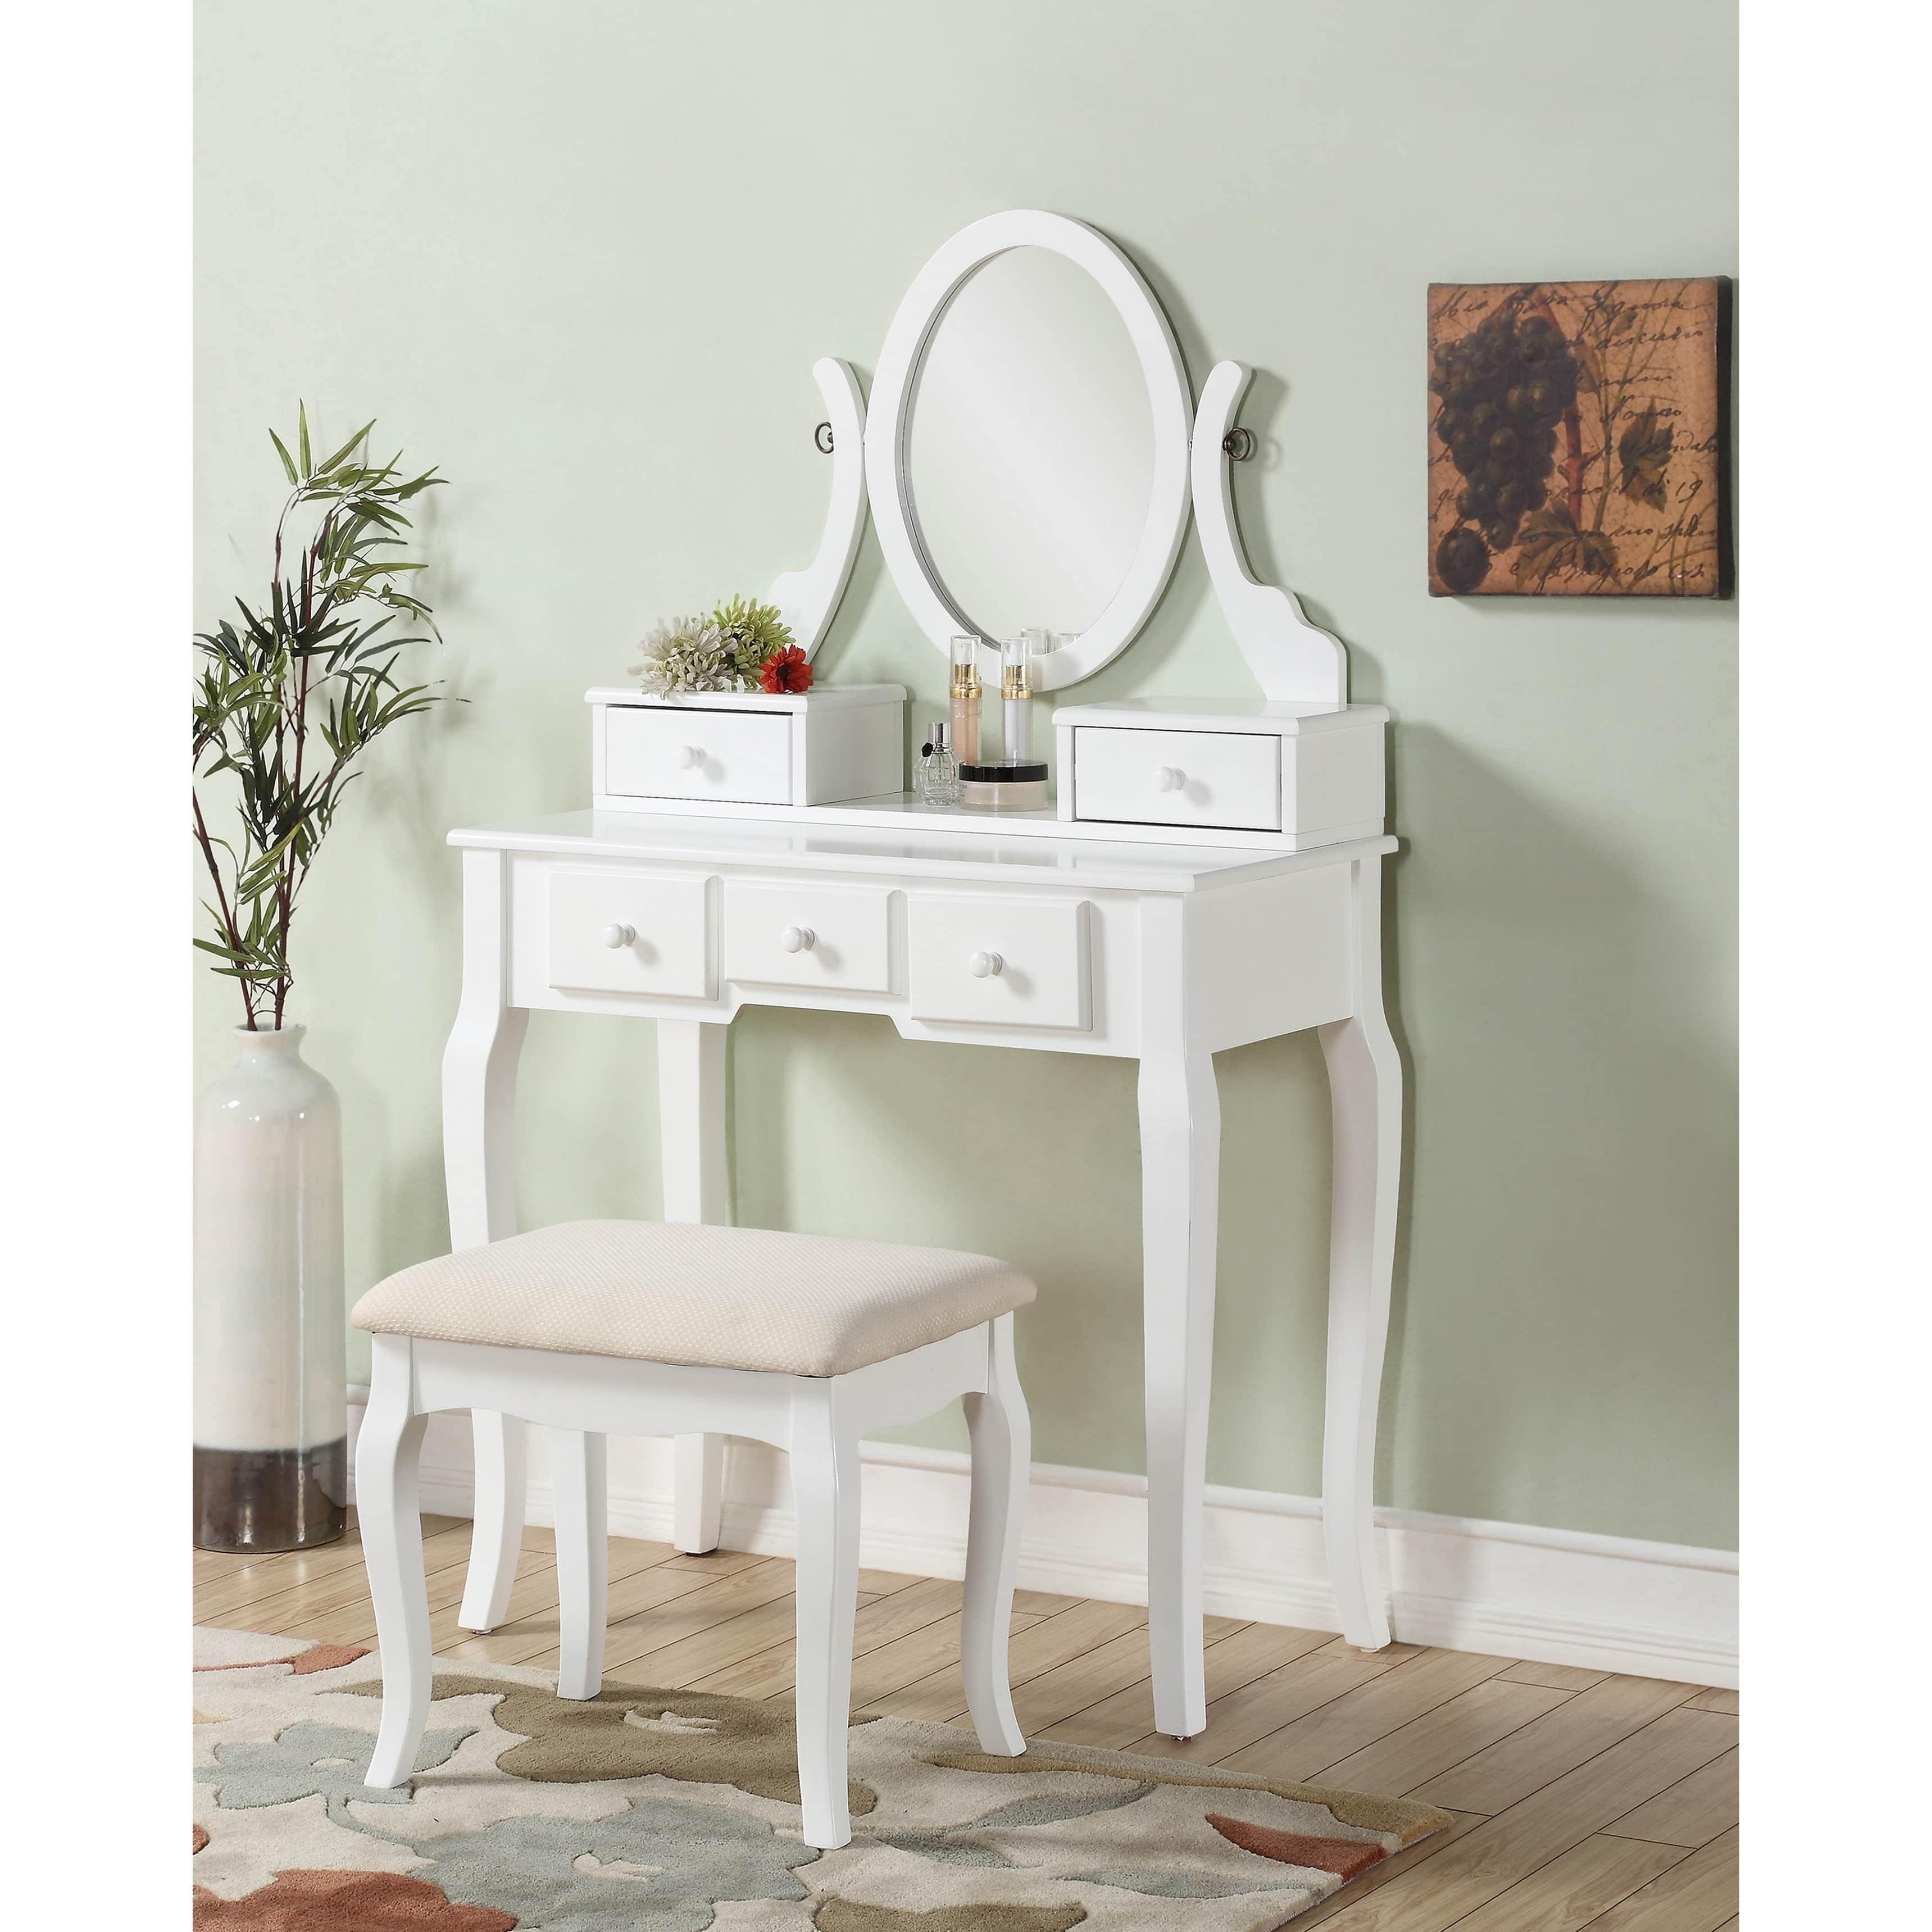 black bench mirror makeup kids full of w chair studded stool table vanity size white with without leather back tall set modern